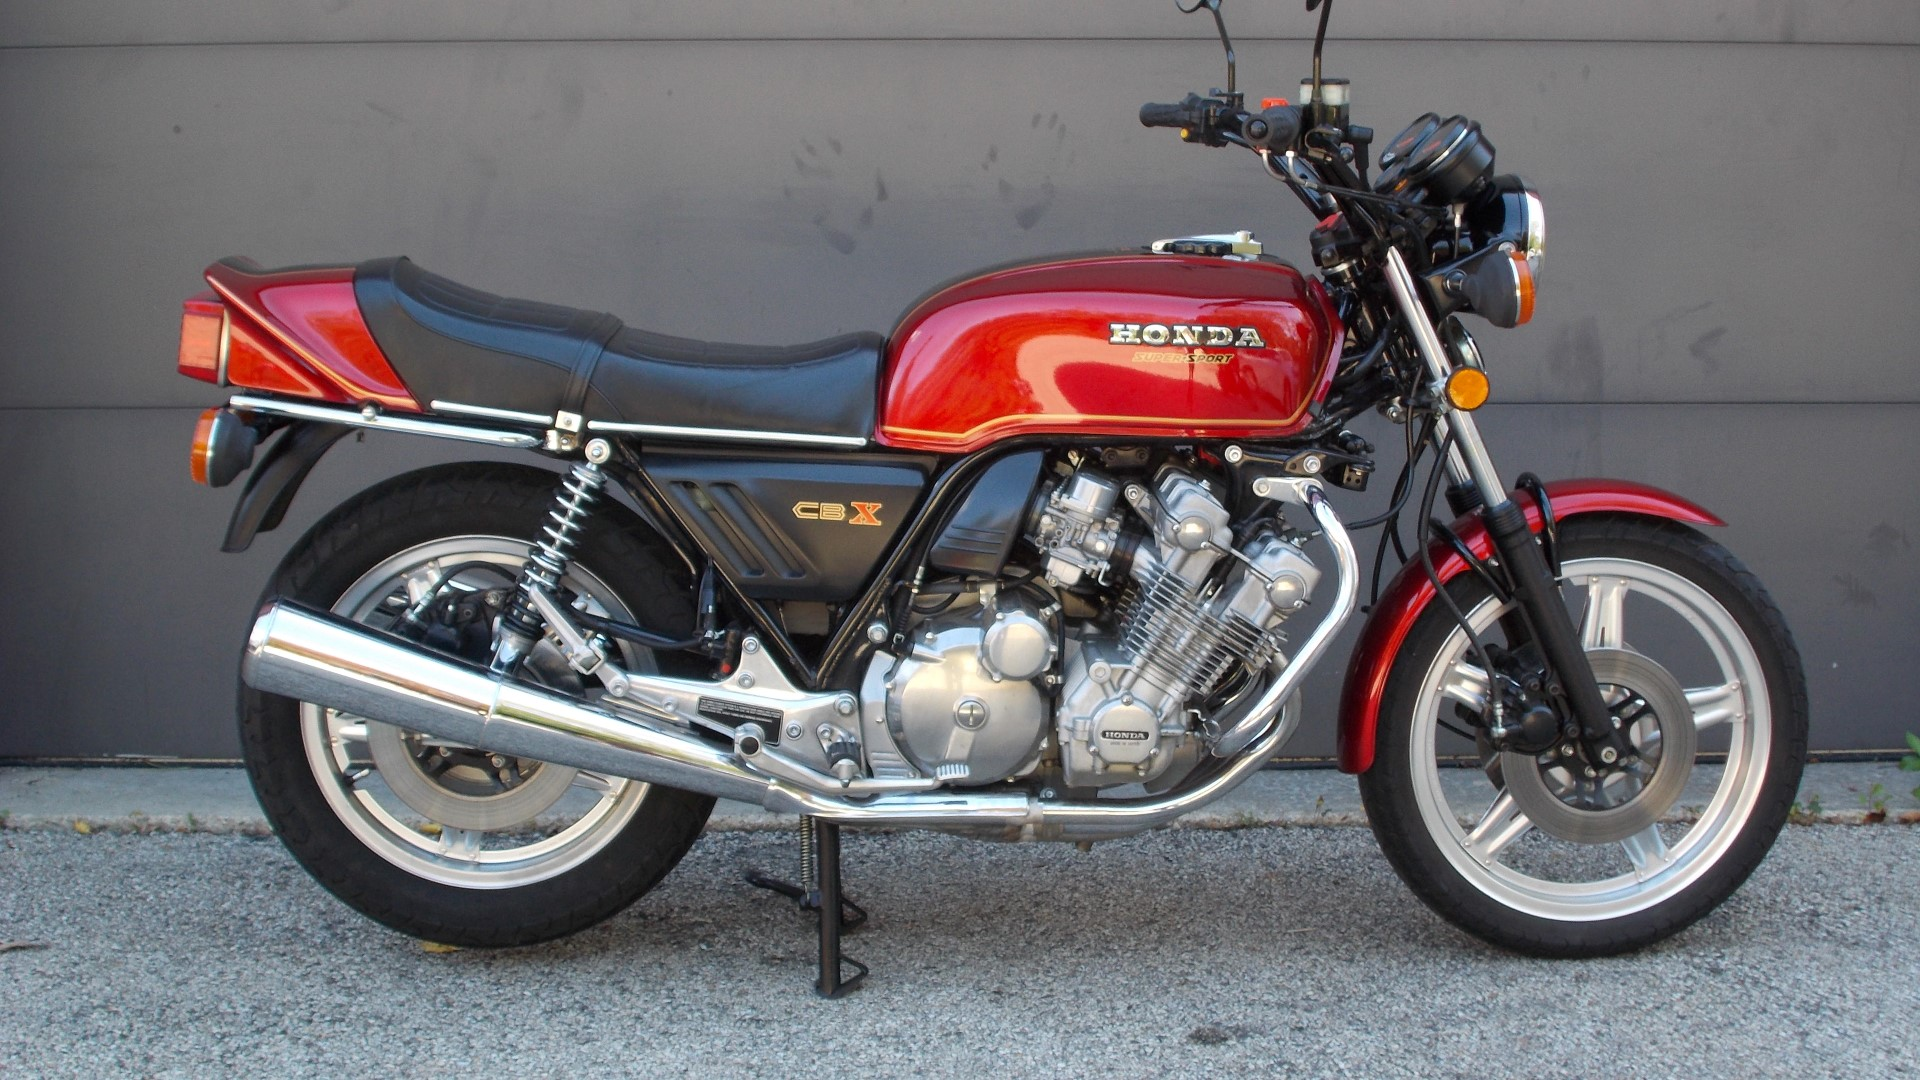 Six Cylinder Archives Rare Sportbikes For Sale 1970 Honda Motorcycle Vin Decoder In 1978 Stunned The Motorcycling World With A Technological Tour De Force 24 Valve Cbx Was Most Ambitious And